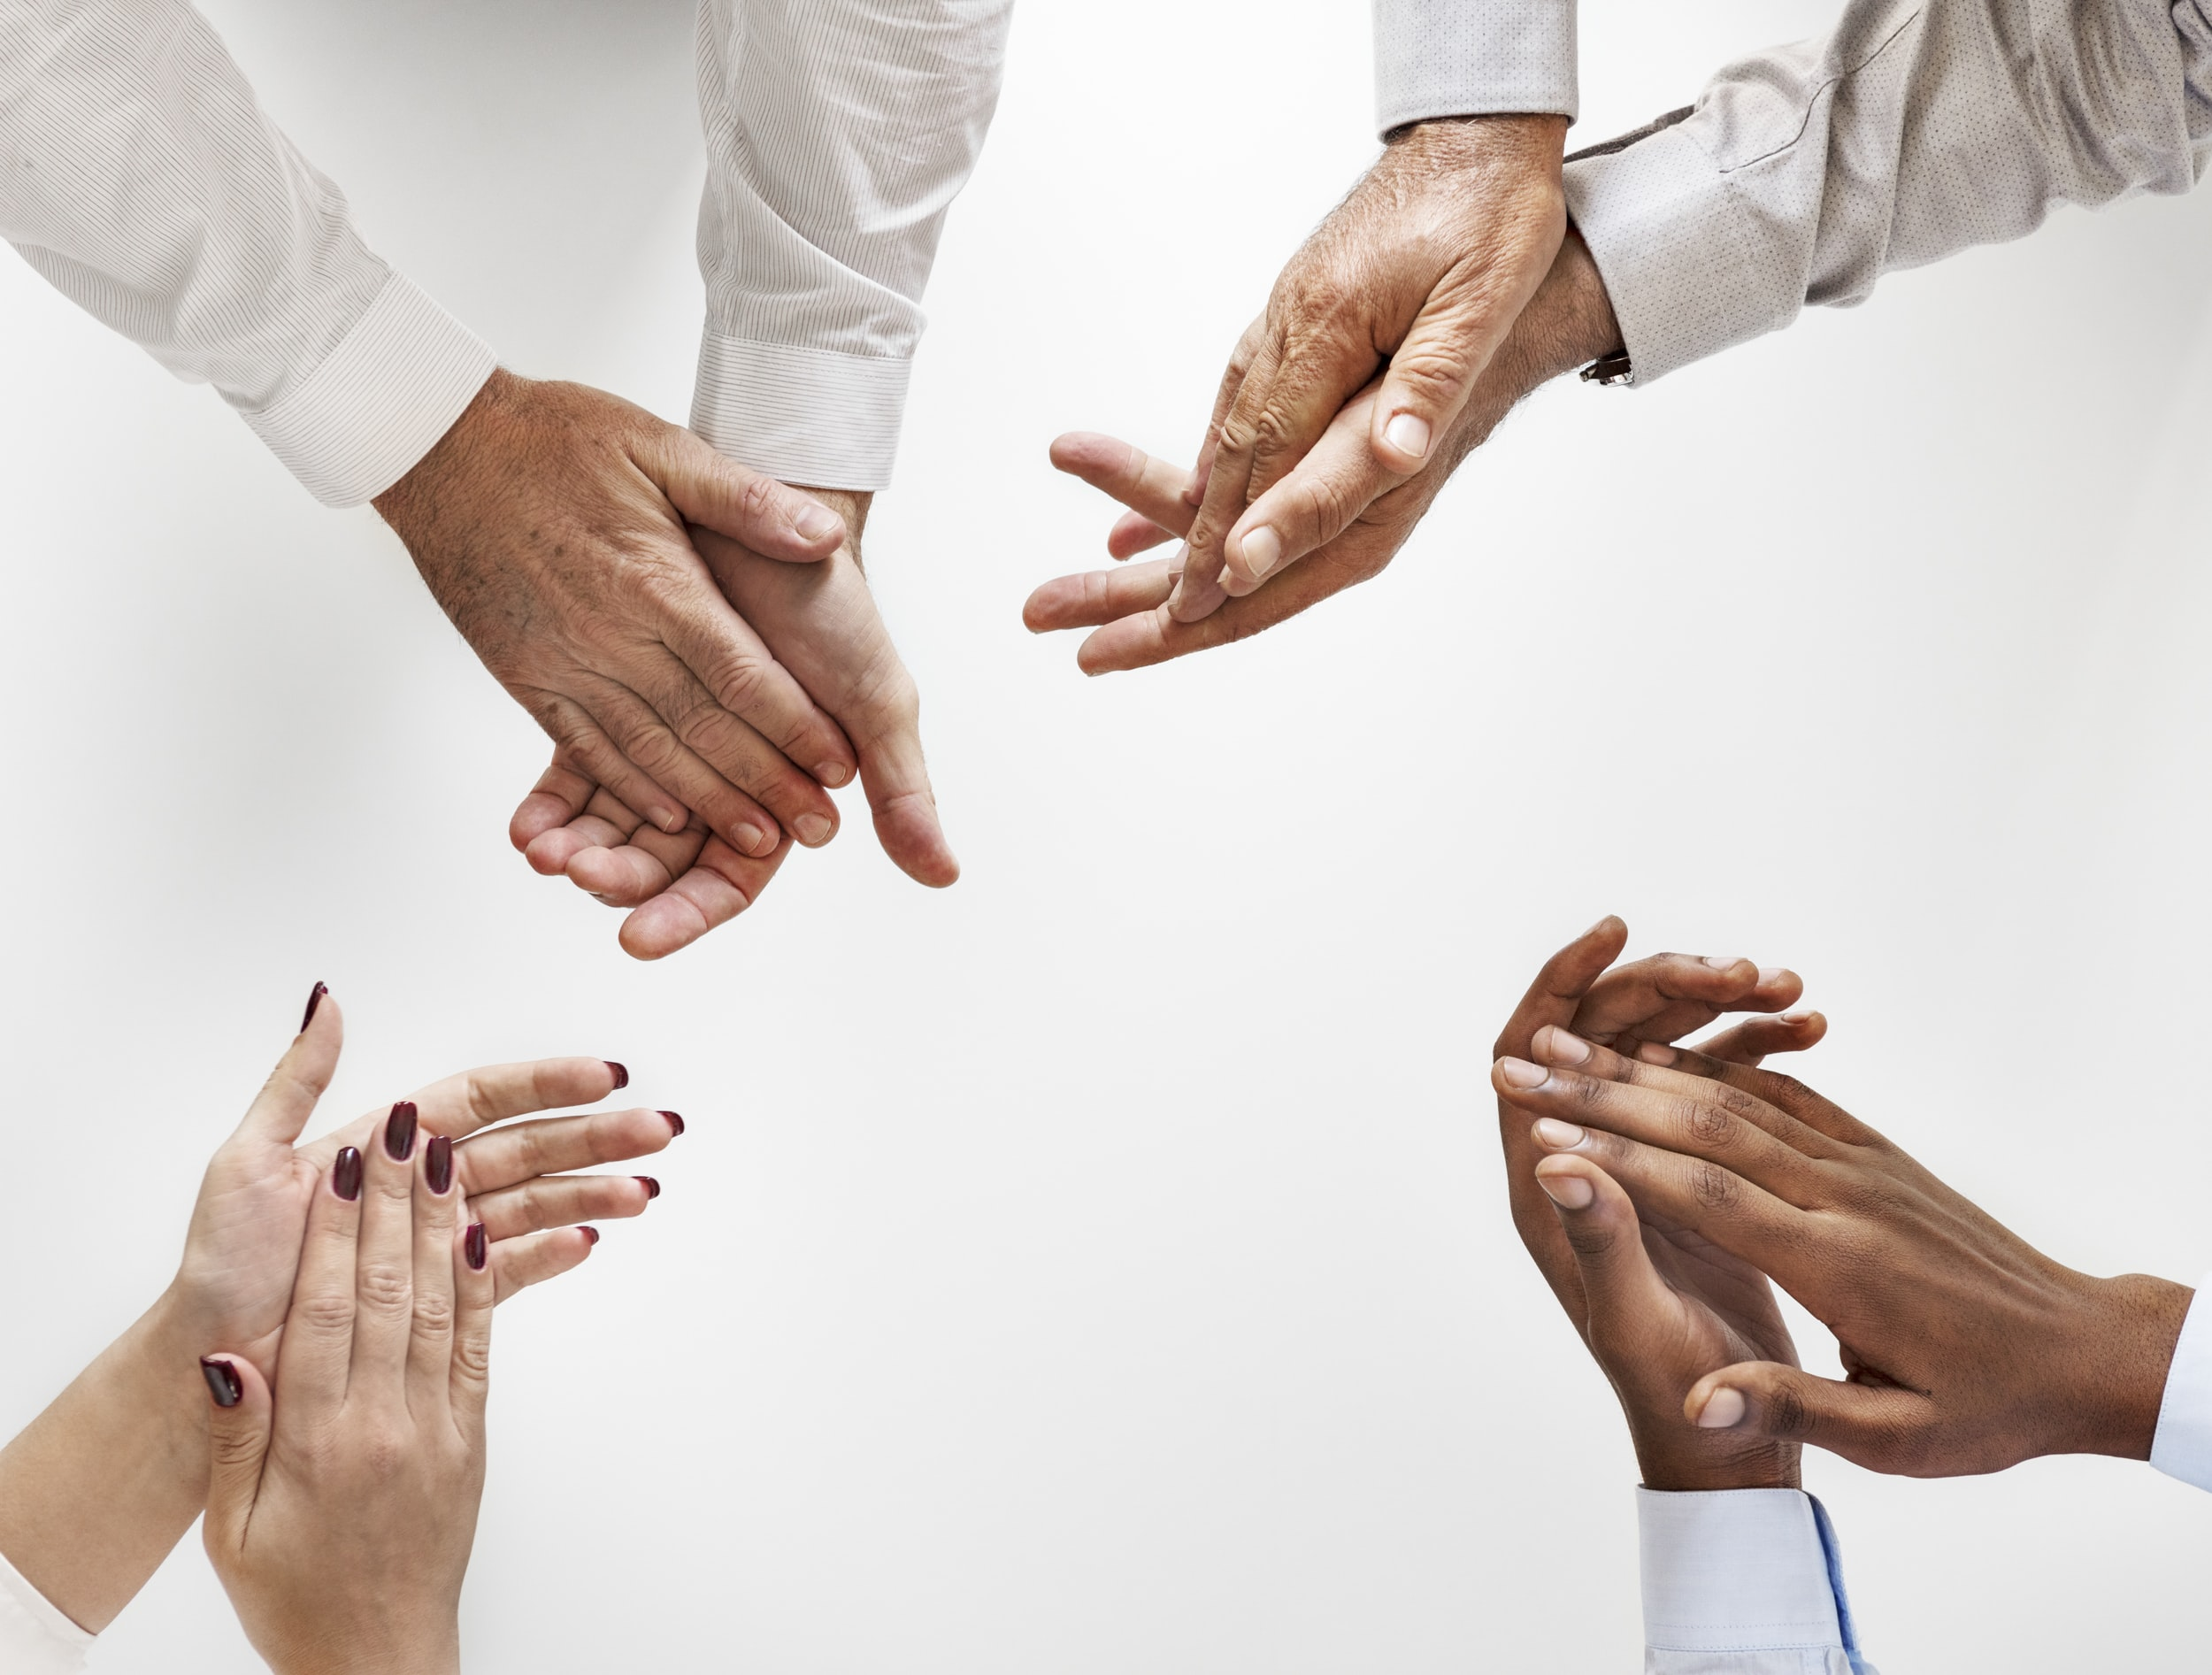 close-up photo of four person's hands